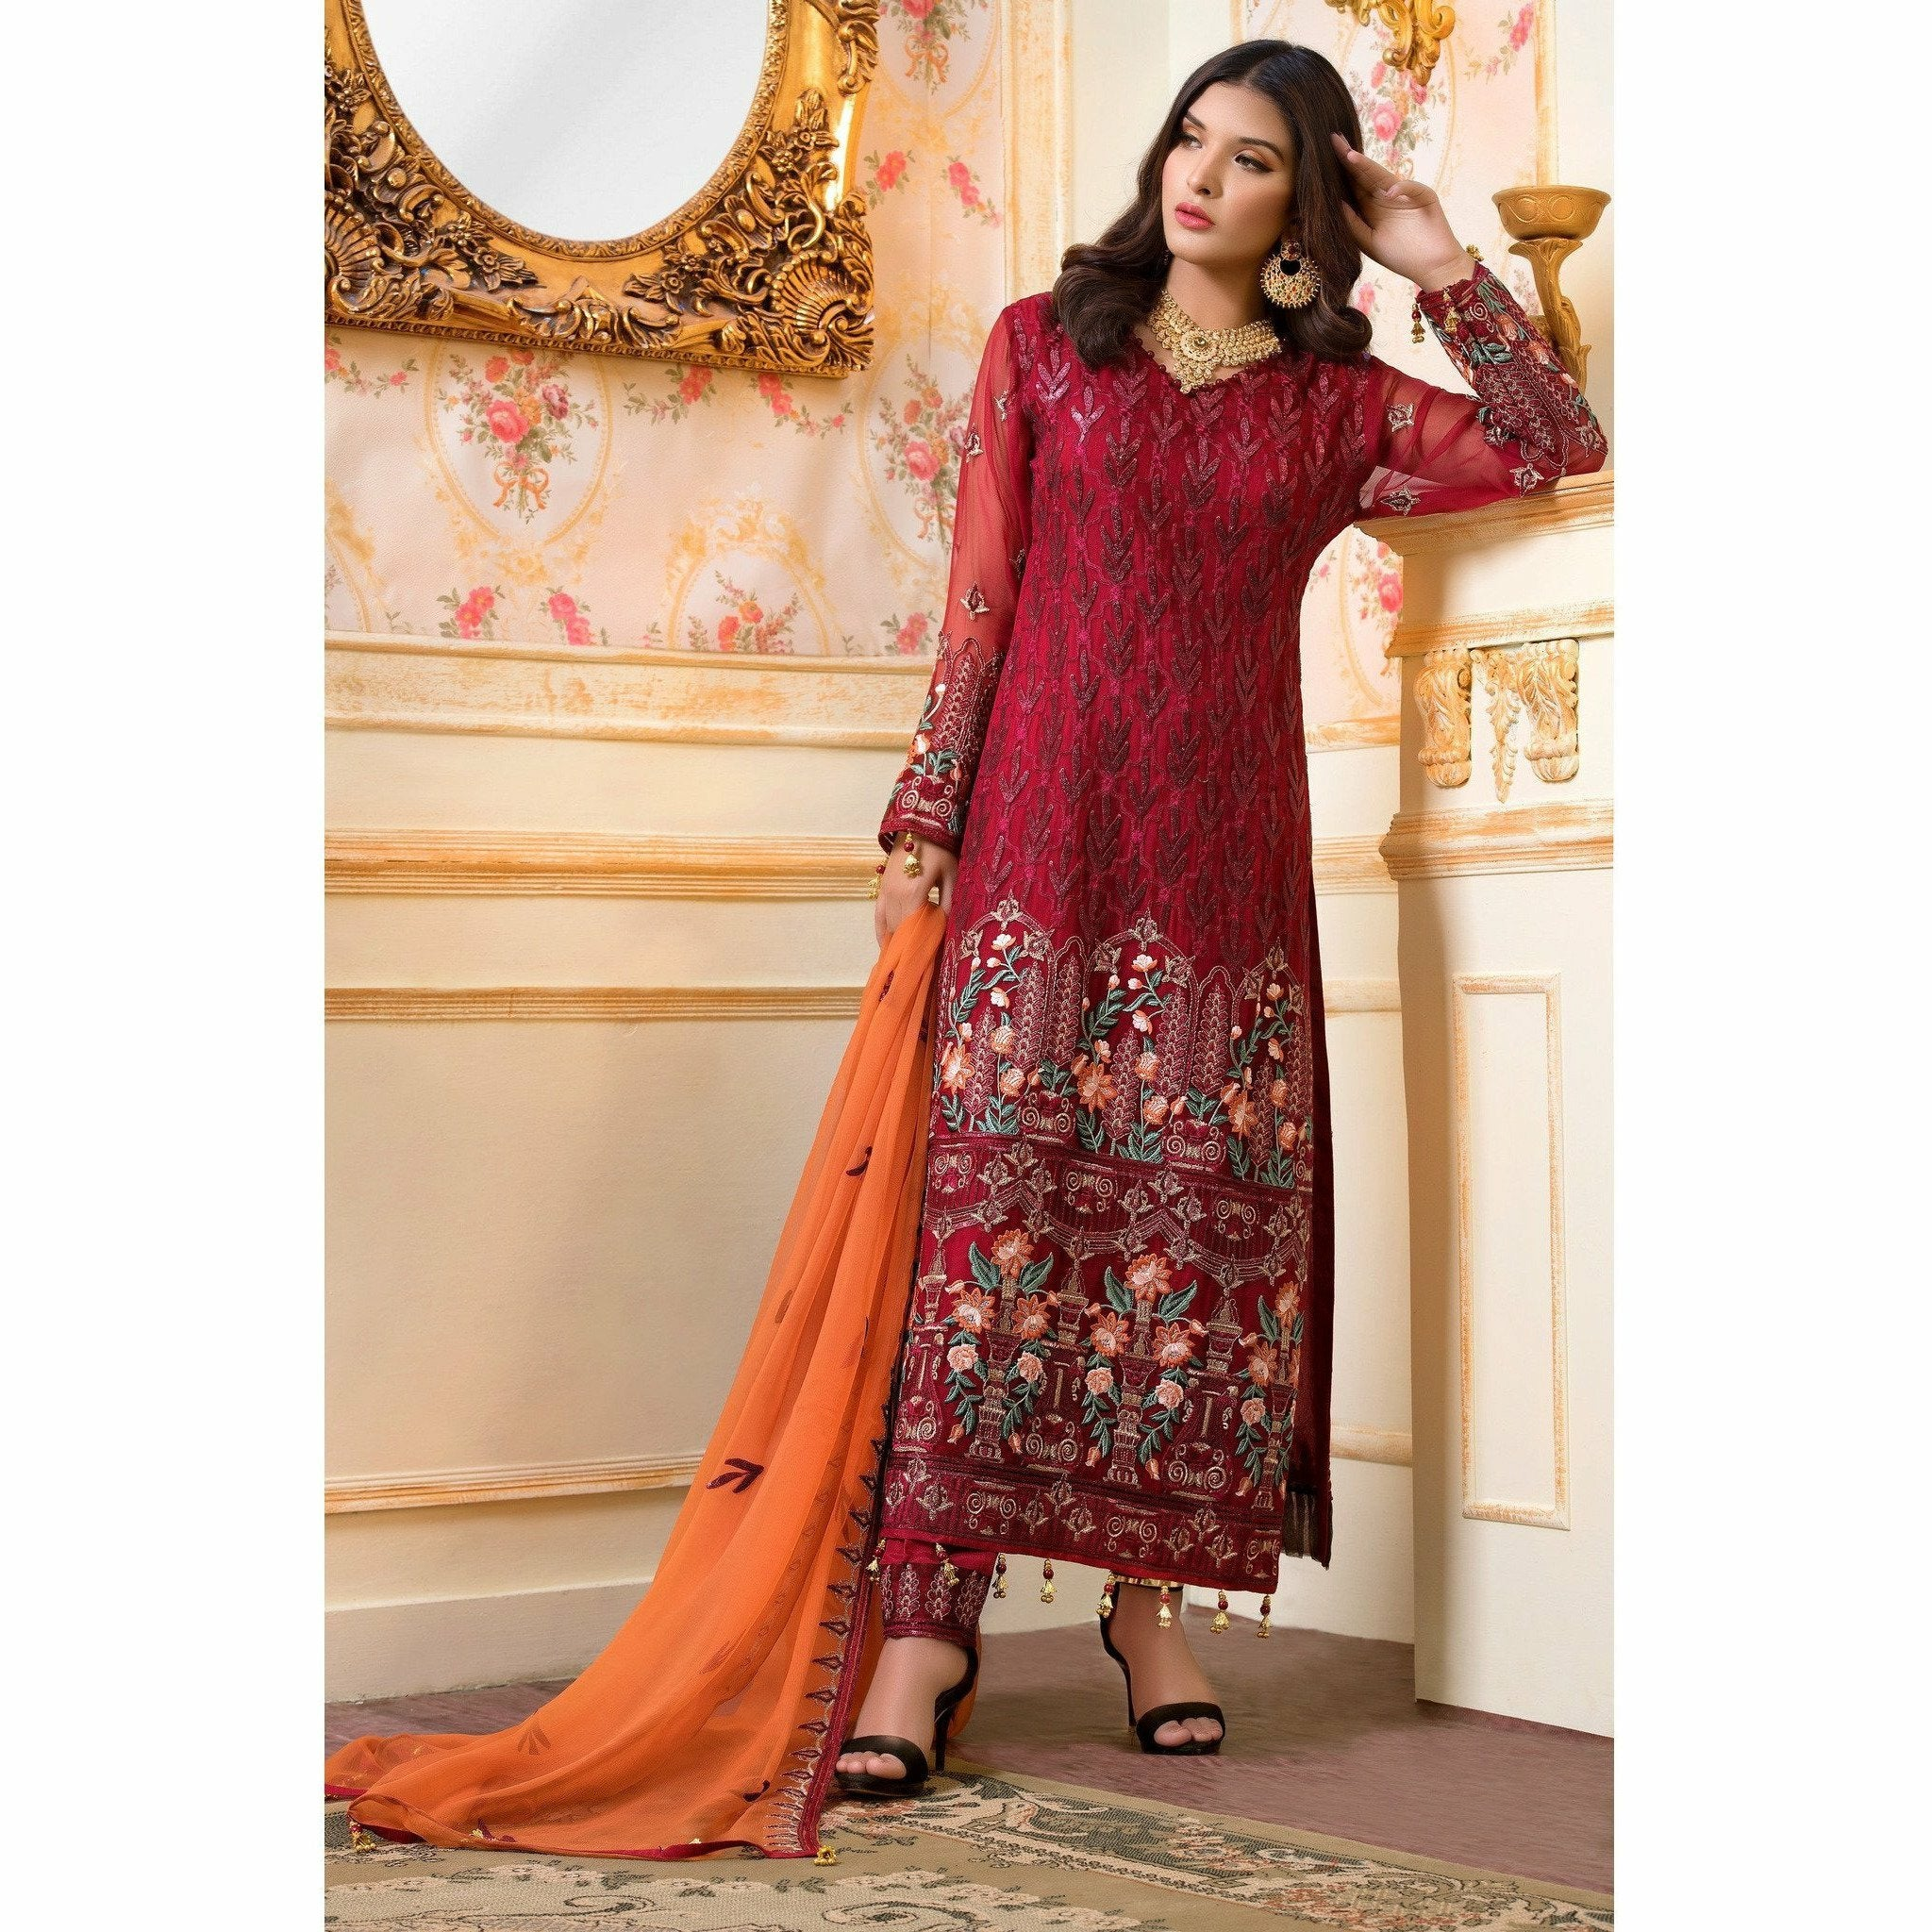 pakistani designer clothes, shalwar kameez uk, pakistani suits uk, ready made pakistani clothes uk